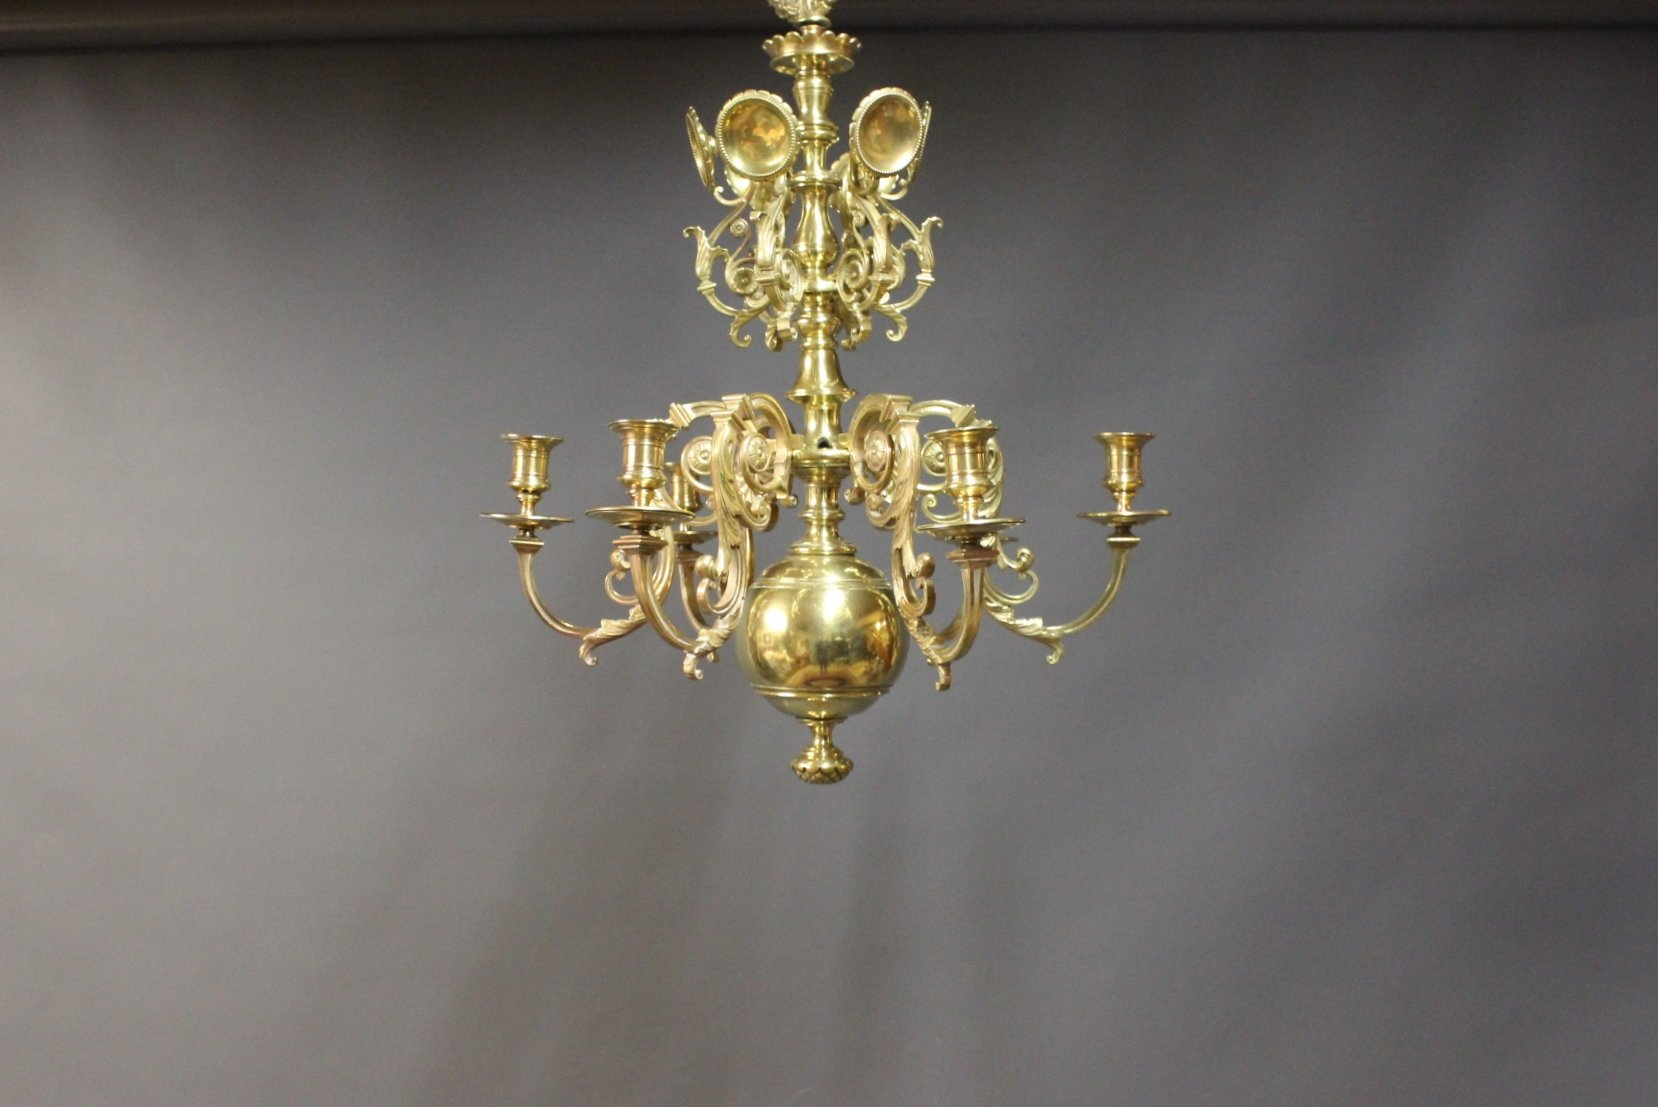 light french with antique glamorous excellent crystal chandelier old for iron sale chandeliers